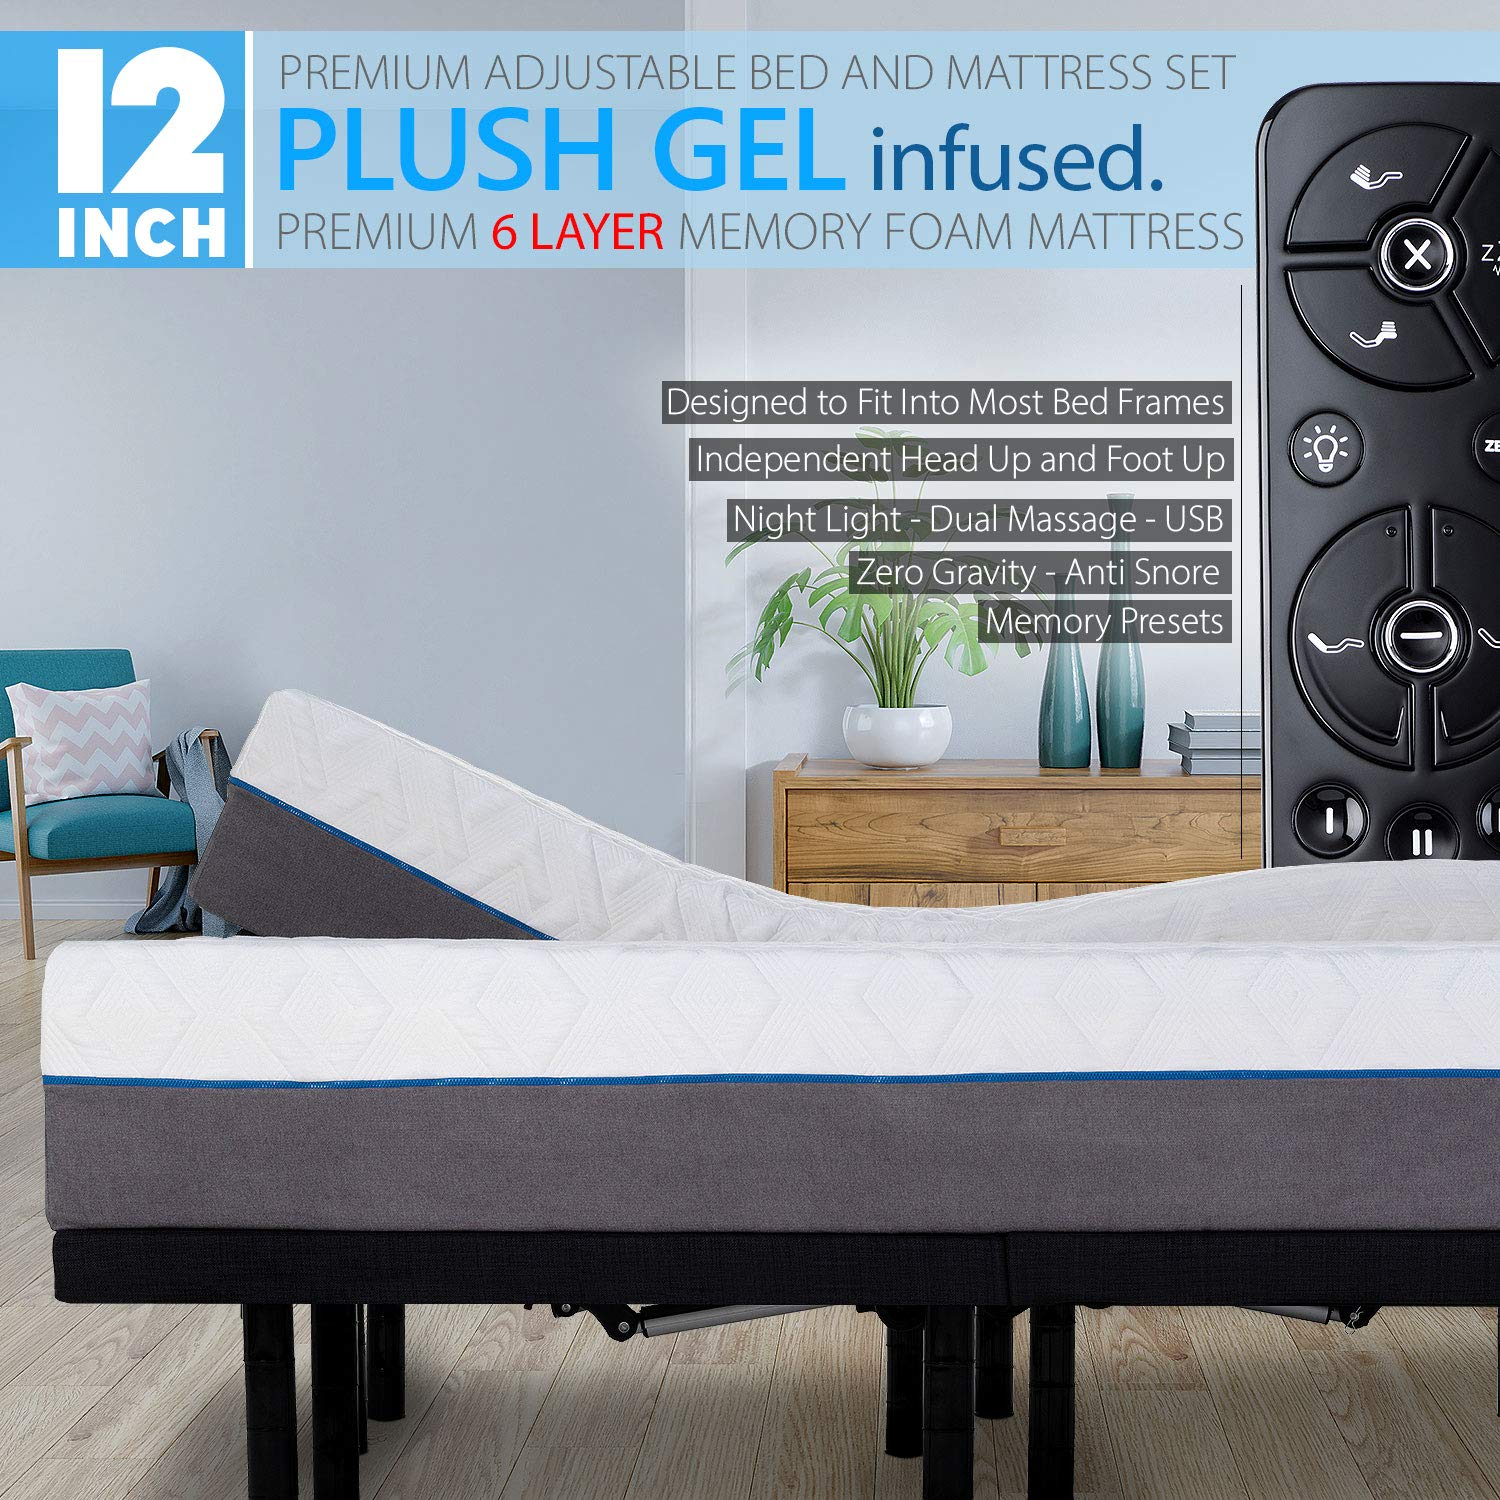 Blissful Nights 12'' Split King Cool Gel Infused Plush Memory Foam Mattress with Premium Adjustable Bed Frame Combo, Massage, USB, Zero Gravity,Anti-Snore, Nightlight (King Split)